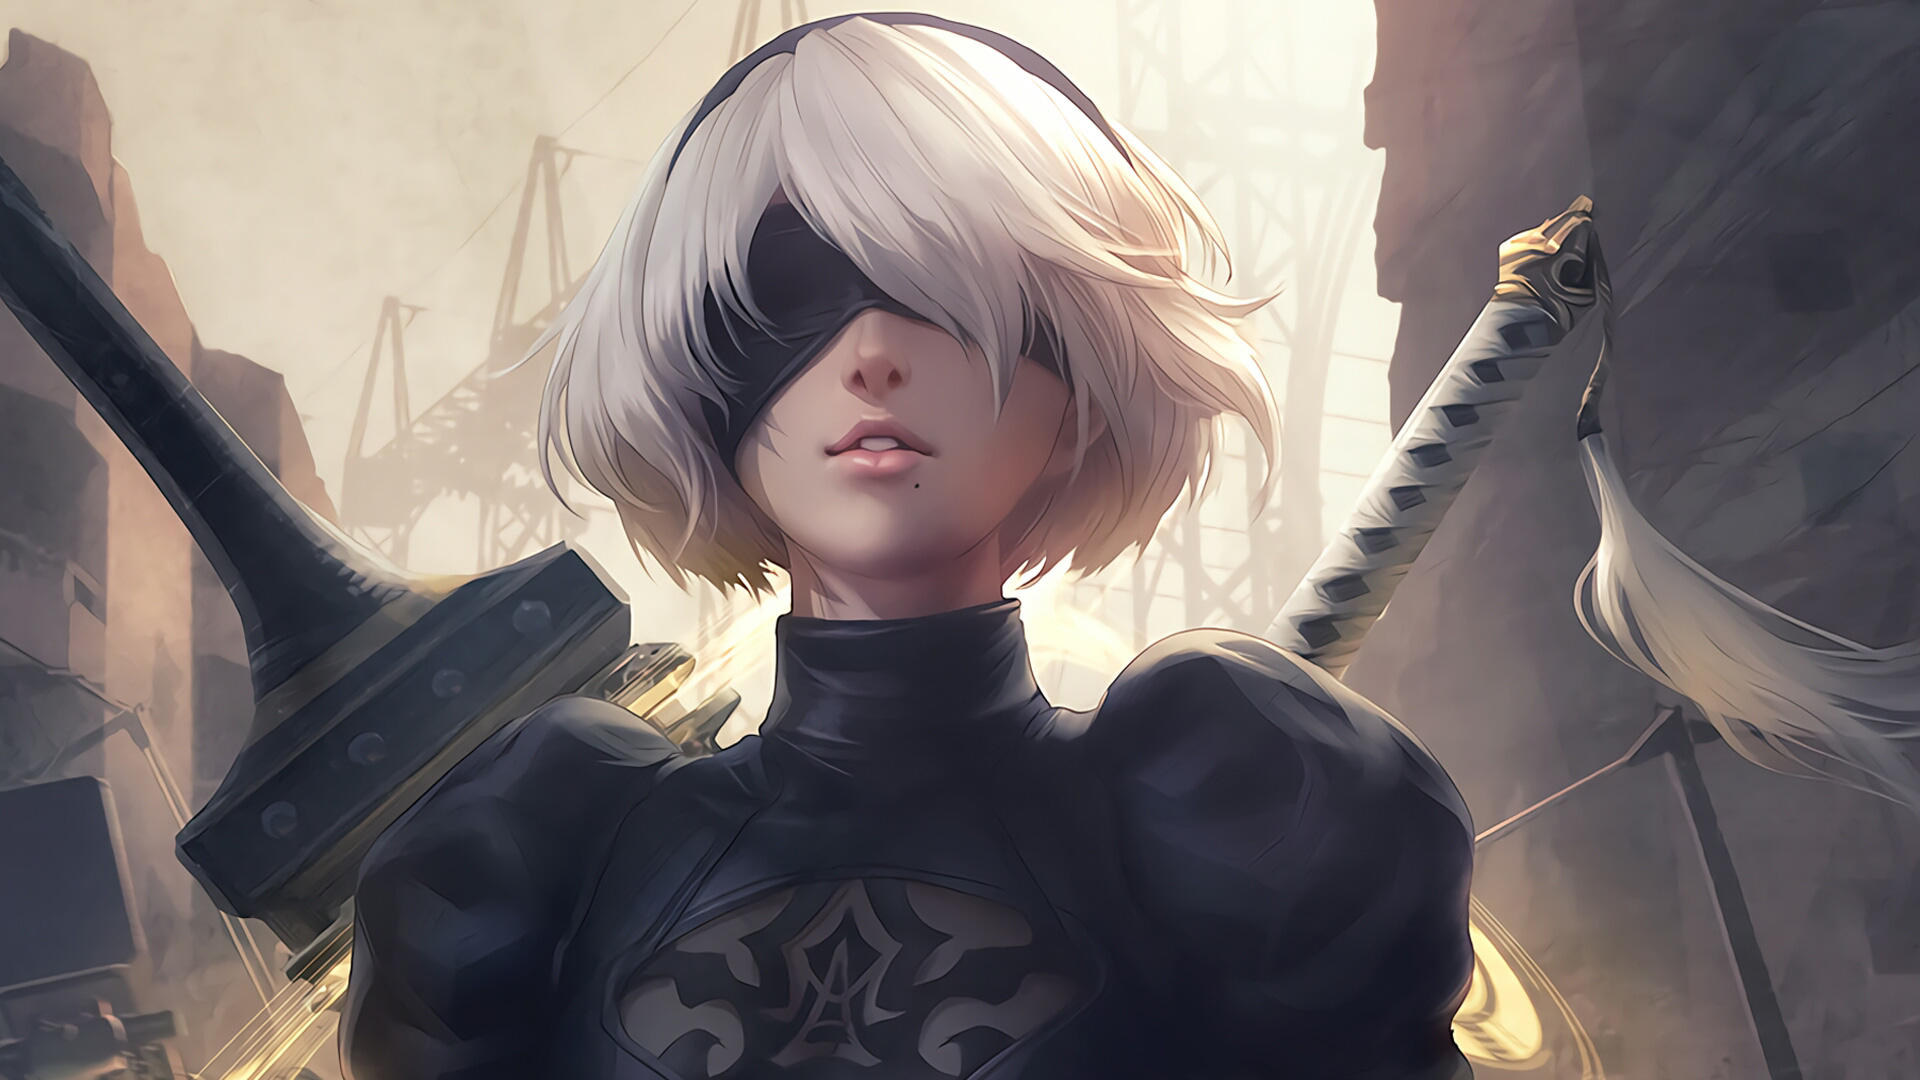 Hd wallpaper nier automata - Full Hd Hdtv Fhd 1080p 1920x1080